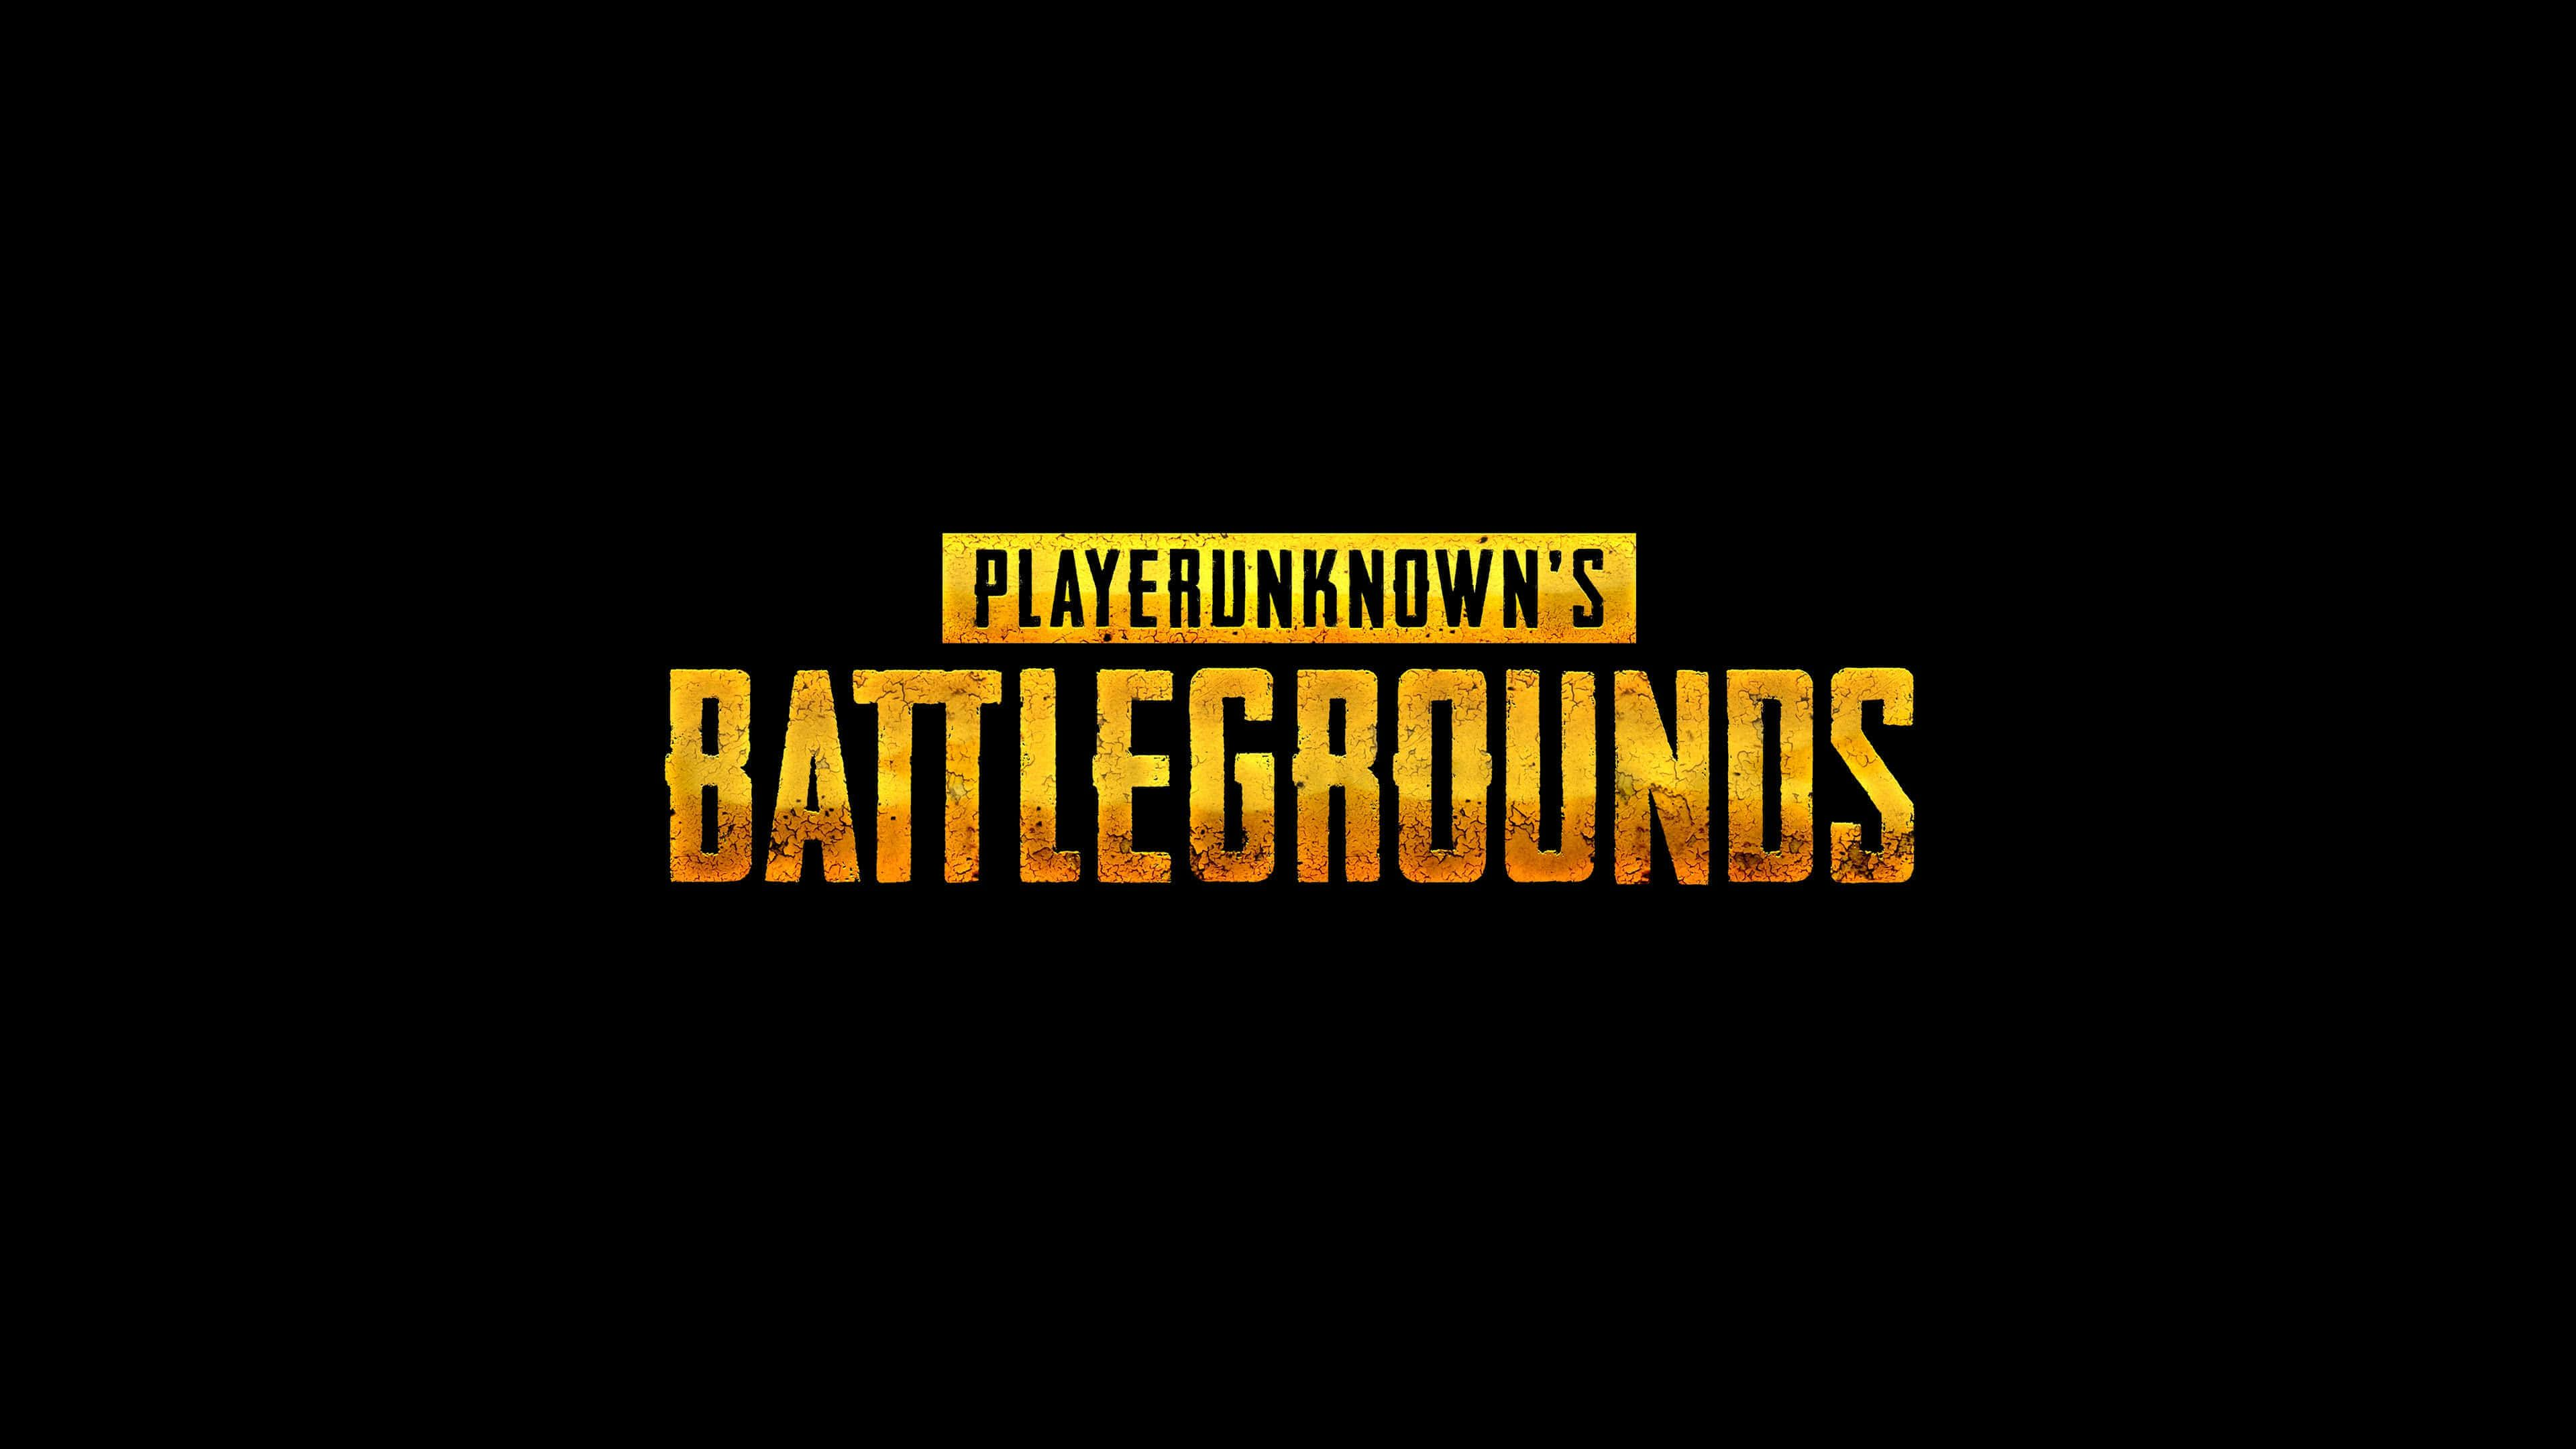 wp3276806 pubg 4k wallpapers - Player Unknown's Battlegrounds (PUBG) 4K Logo - Pubg wallpaper phone, pubg wallpaper iphone, pubg wallpaper 1920x1080 hd, pubg hd wallpapers, pubg 4k wallpapers, pubg 4k logo, Player Unknown's Battlegrounds 4k wallpapers